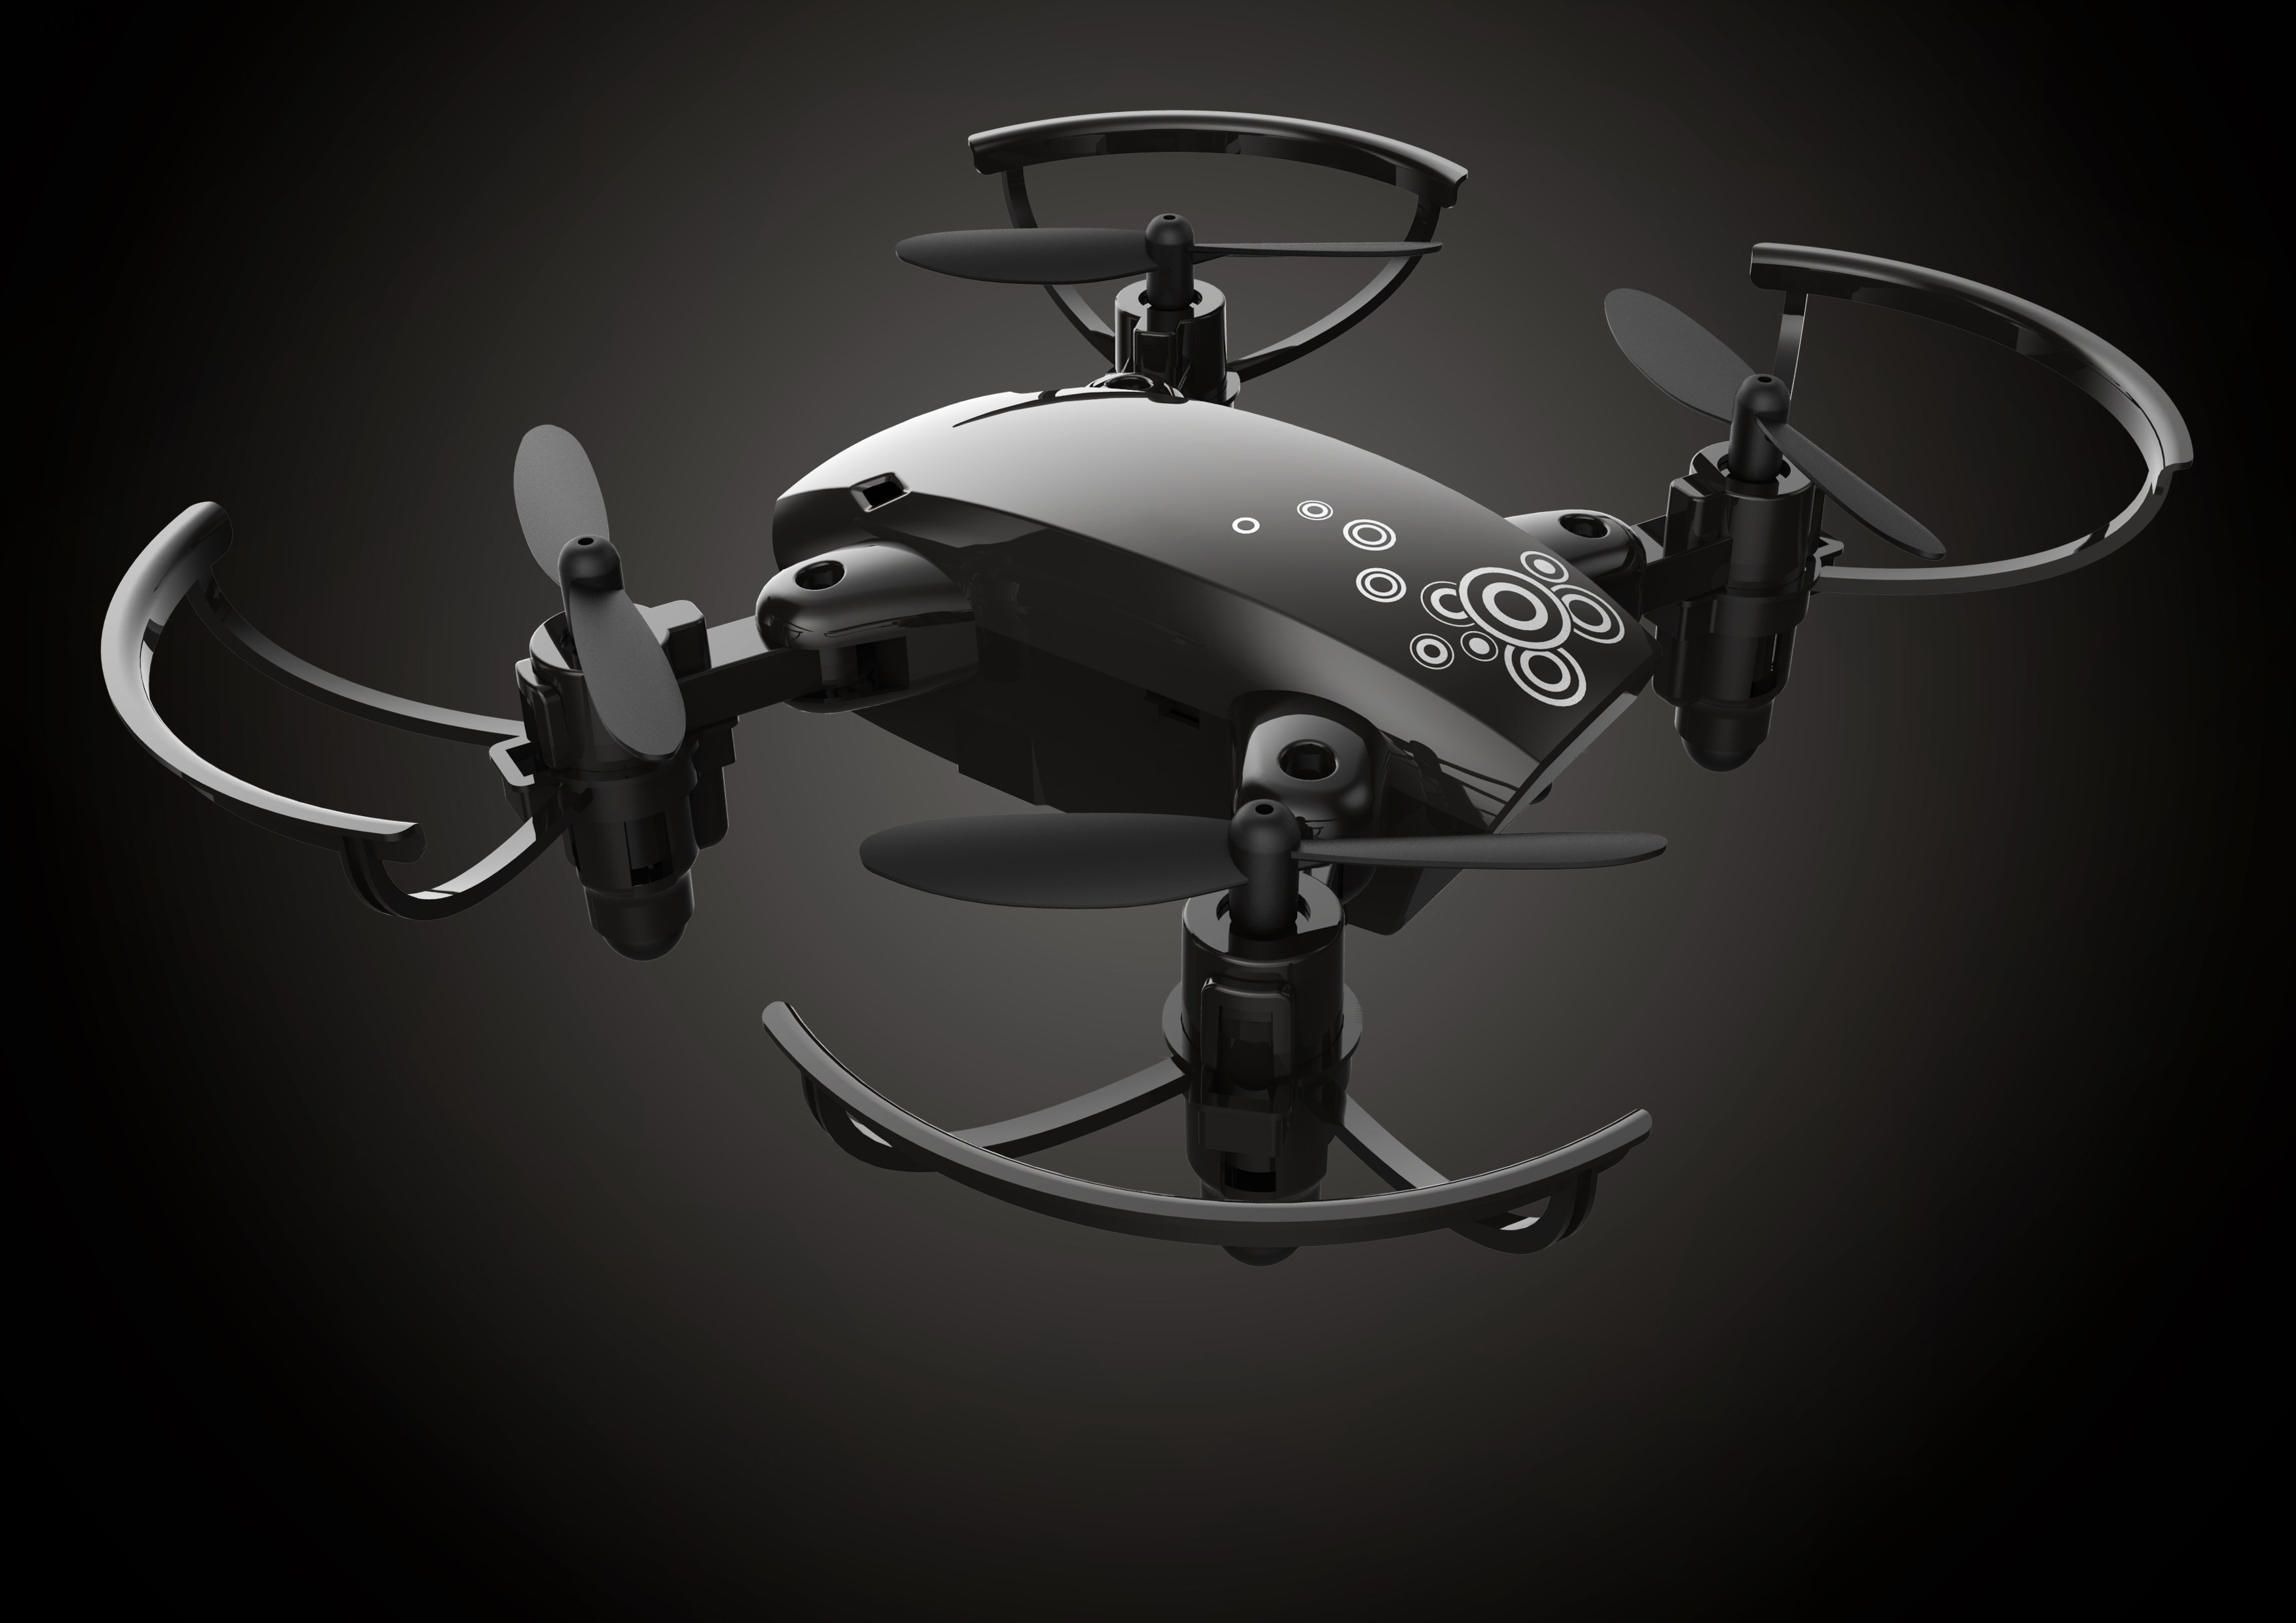 1806A series Fixed height unmanned aerial vehicle Helic Max four axis aerial photography for boys toys - 5